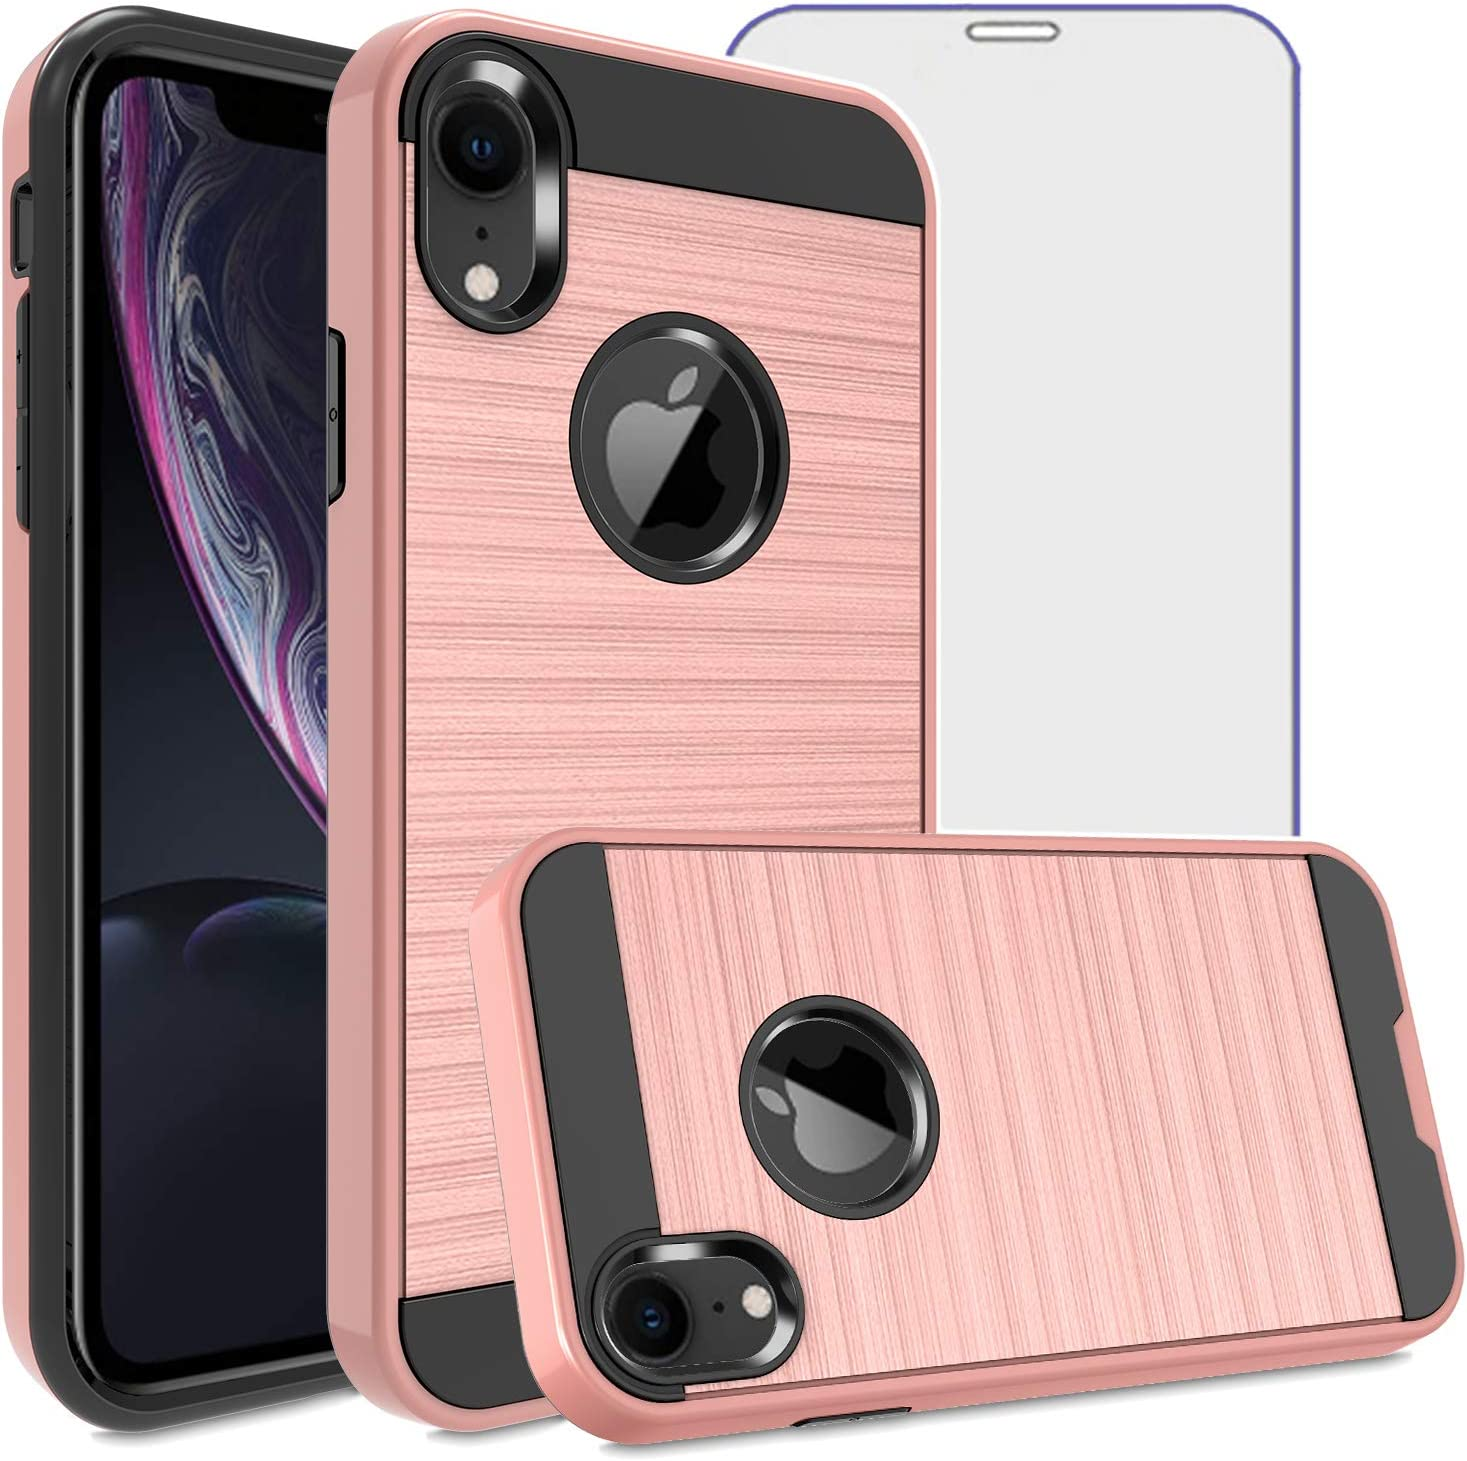 Asuwish Compatible with iPhone XR Case Tempered Glass Screen Protector Cover Grip Slim Hard Shockproof Protective Cell Phone Cases for iPhoneXR iPhone10R i Phonex 10XR 10R 10 R RX CR Women Rose Gold